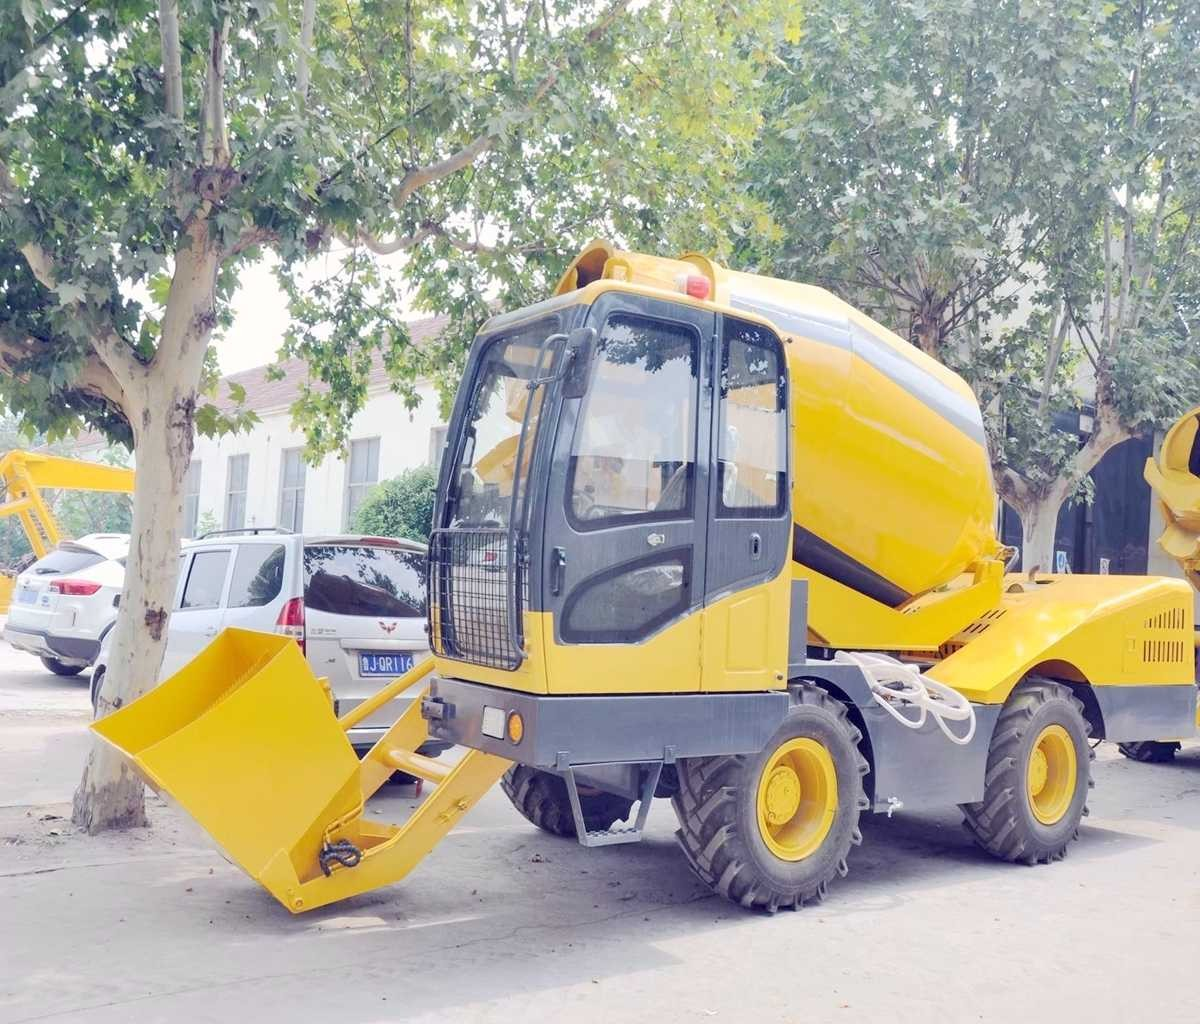 Sales China Low Price 4 Cubic Meters Used Concrete Mixer Truck With Pump, Buy China Low Price 4 Cubic Meters Used Concrete Mixer Truck With Pump, China Low Price 4 Cubic Meters Used Concrete Mixer Truck With Pump Factory, China Low Price 4 Cubic Meters Used Concrete Mixer Truck With Pump Brands